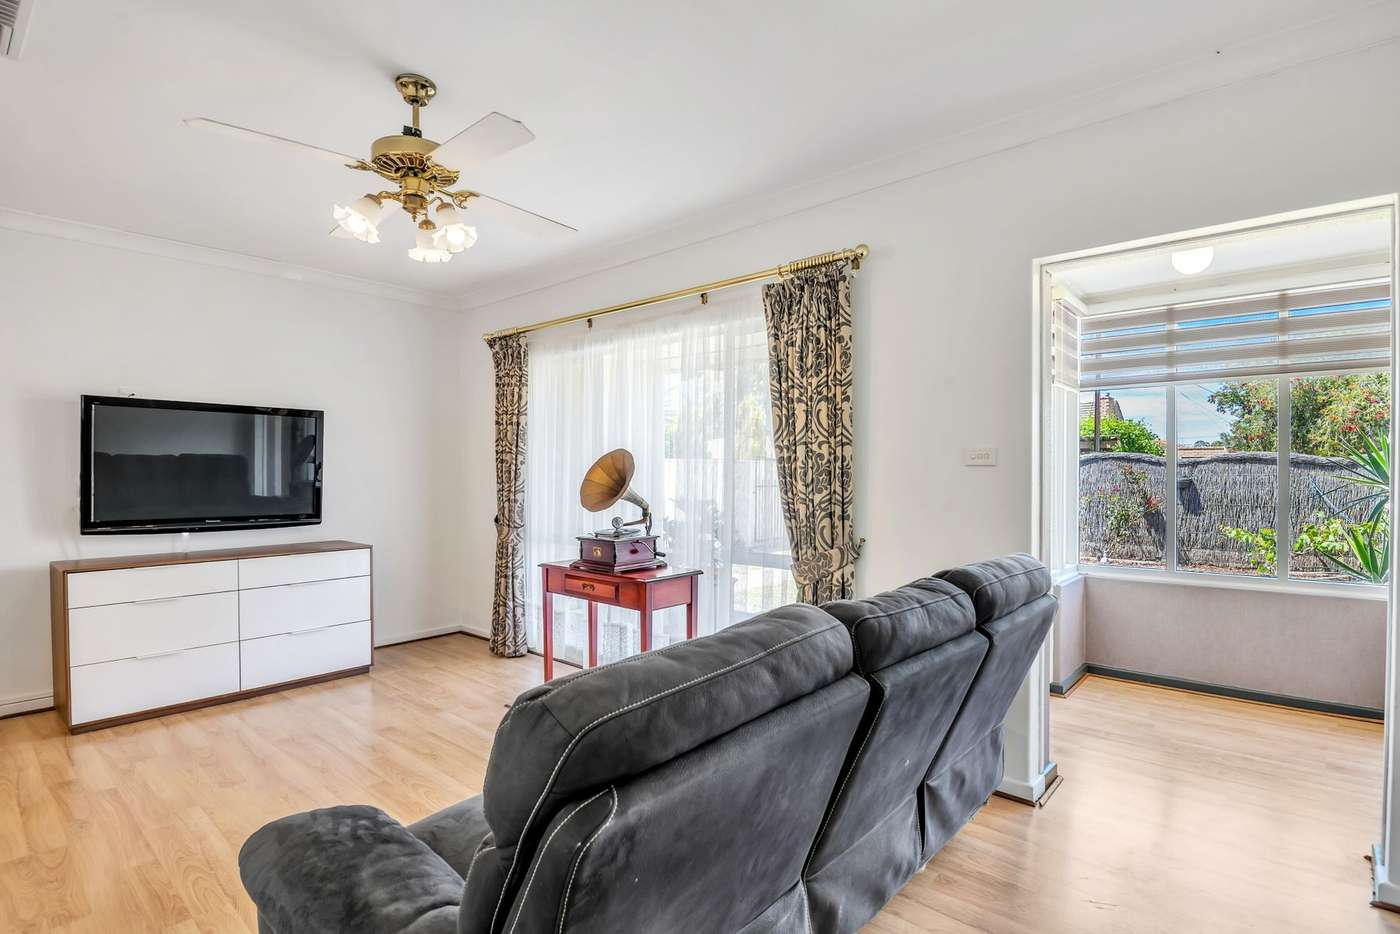 Fifth view of Homely house listing, 49 Penong Avenue, Camden Park SA 5038